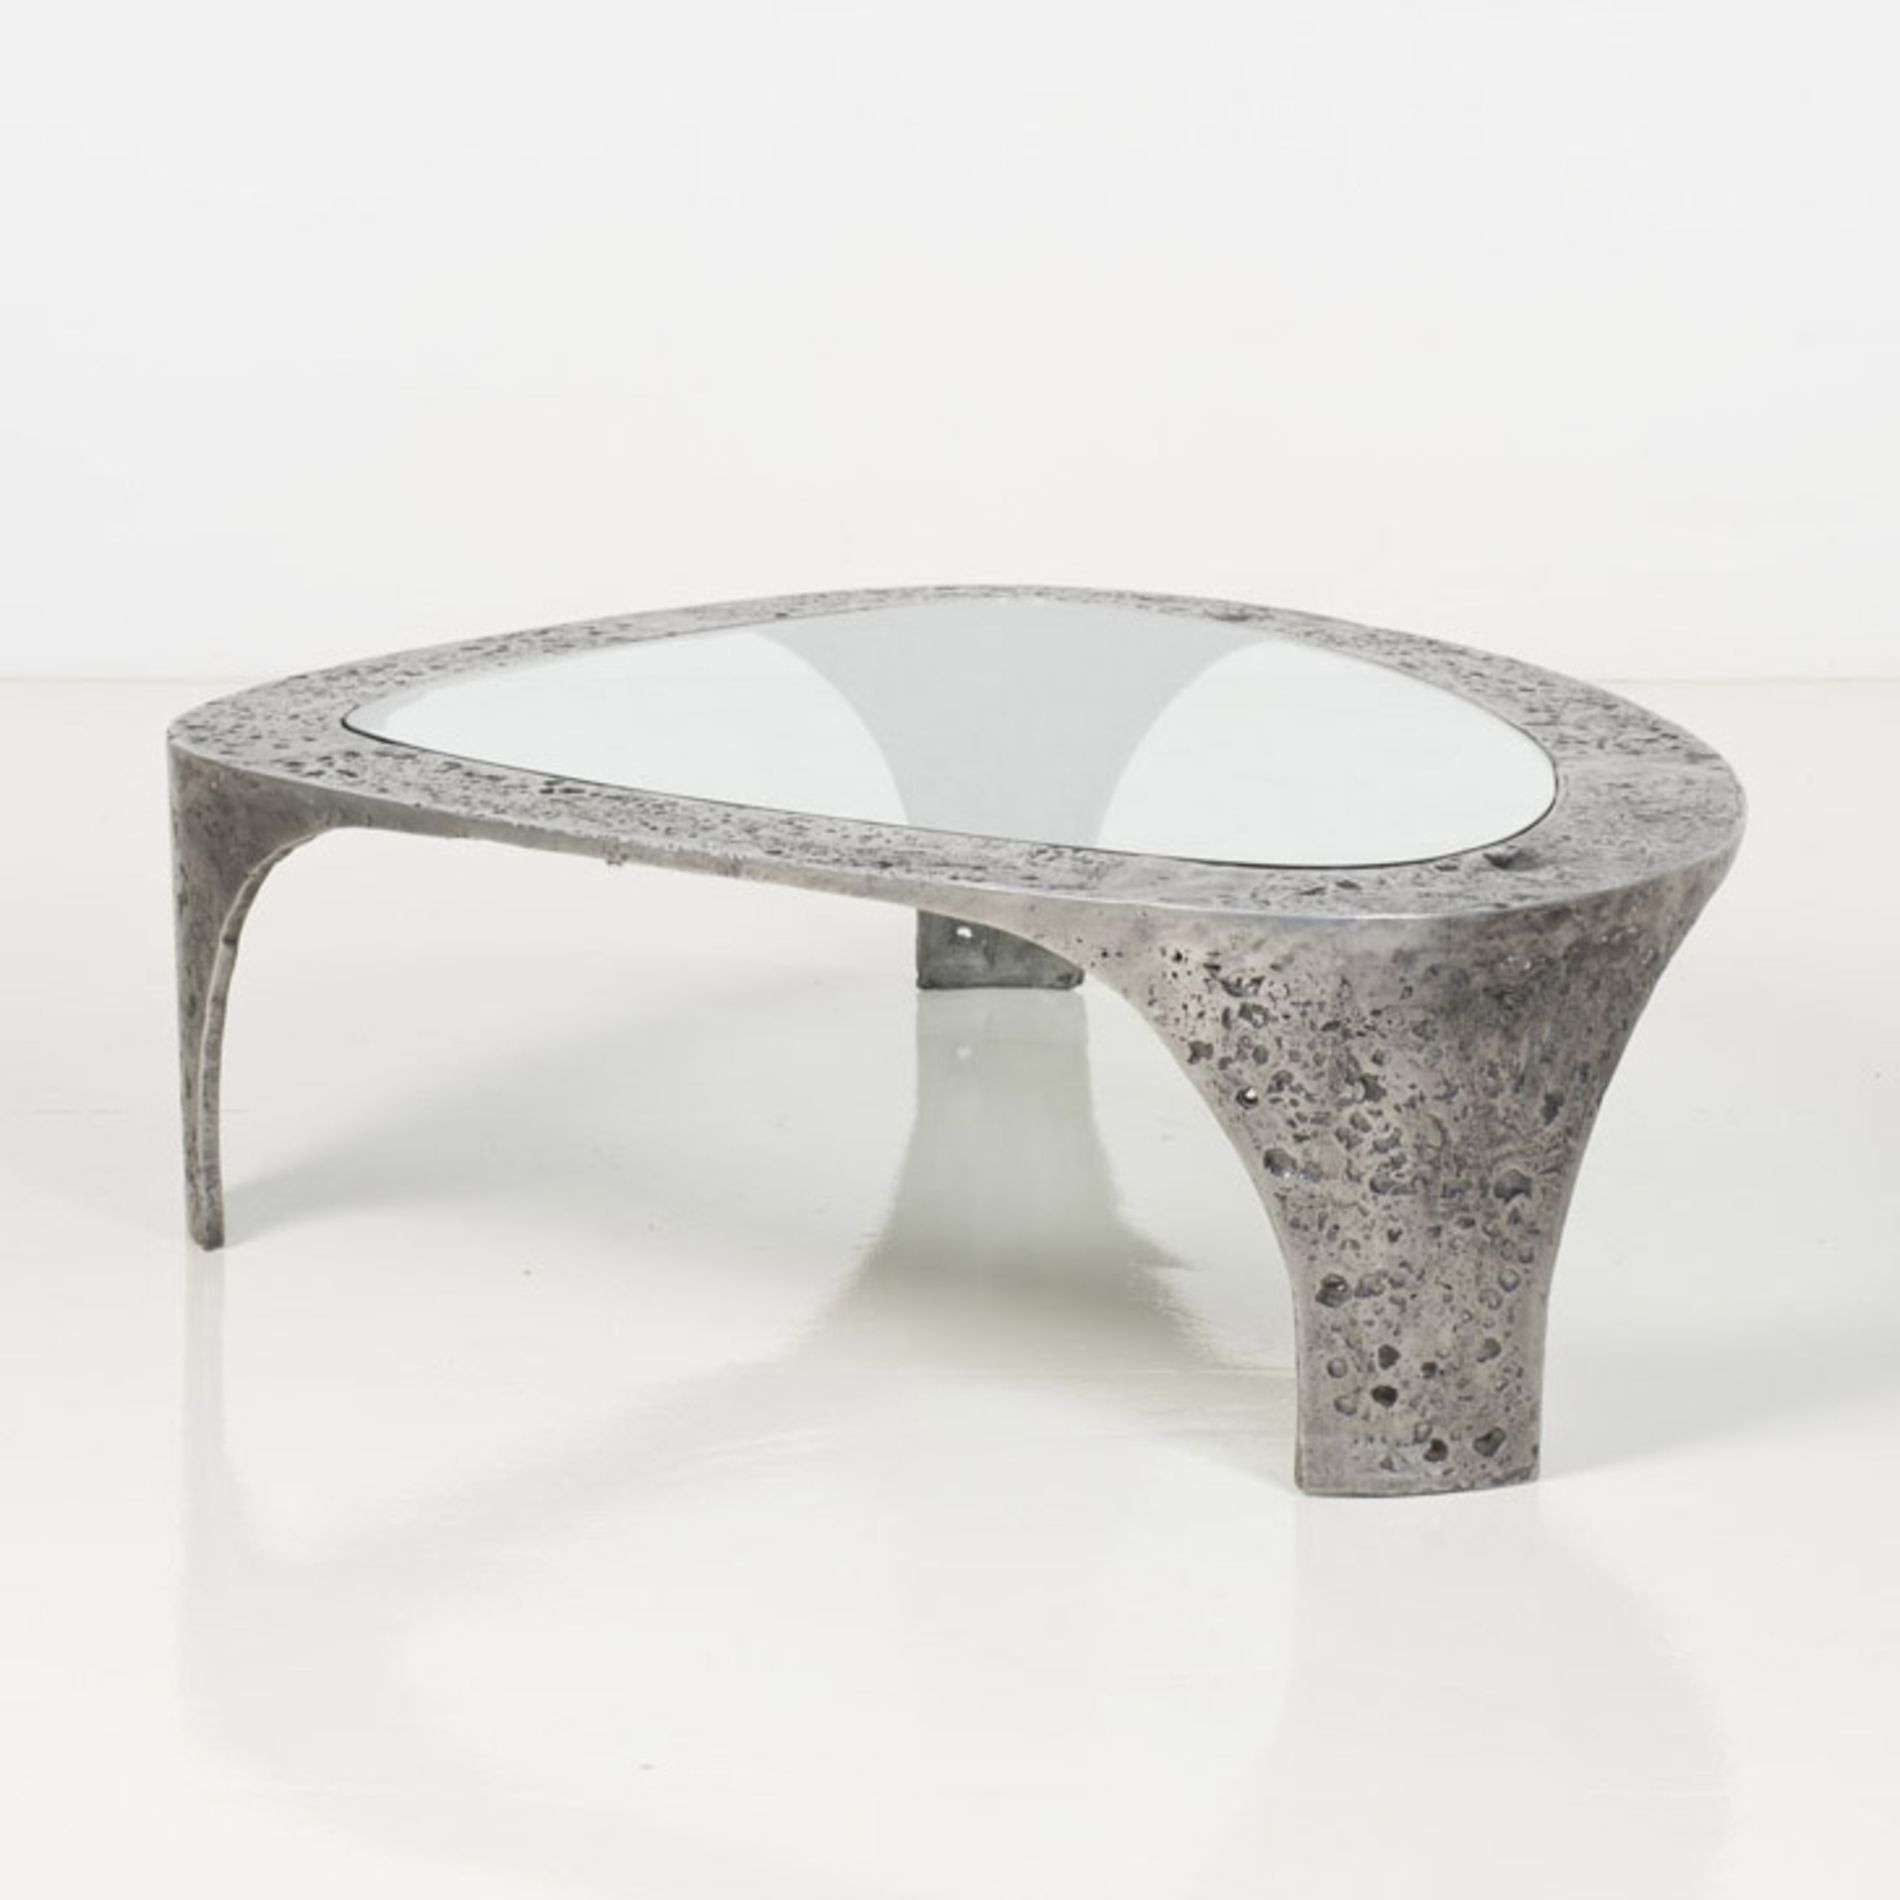 Pin By Product Bureau On Tables Coffee Side: Silas Seandel; Cast Bronze, Aluminum And Glass 'Duomo